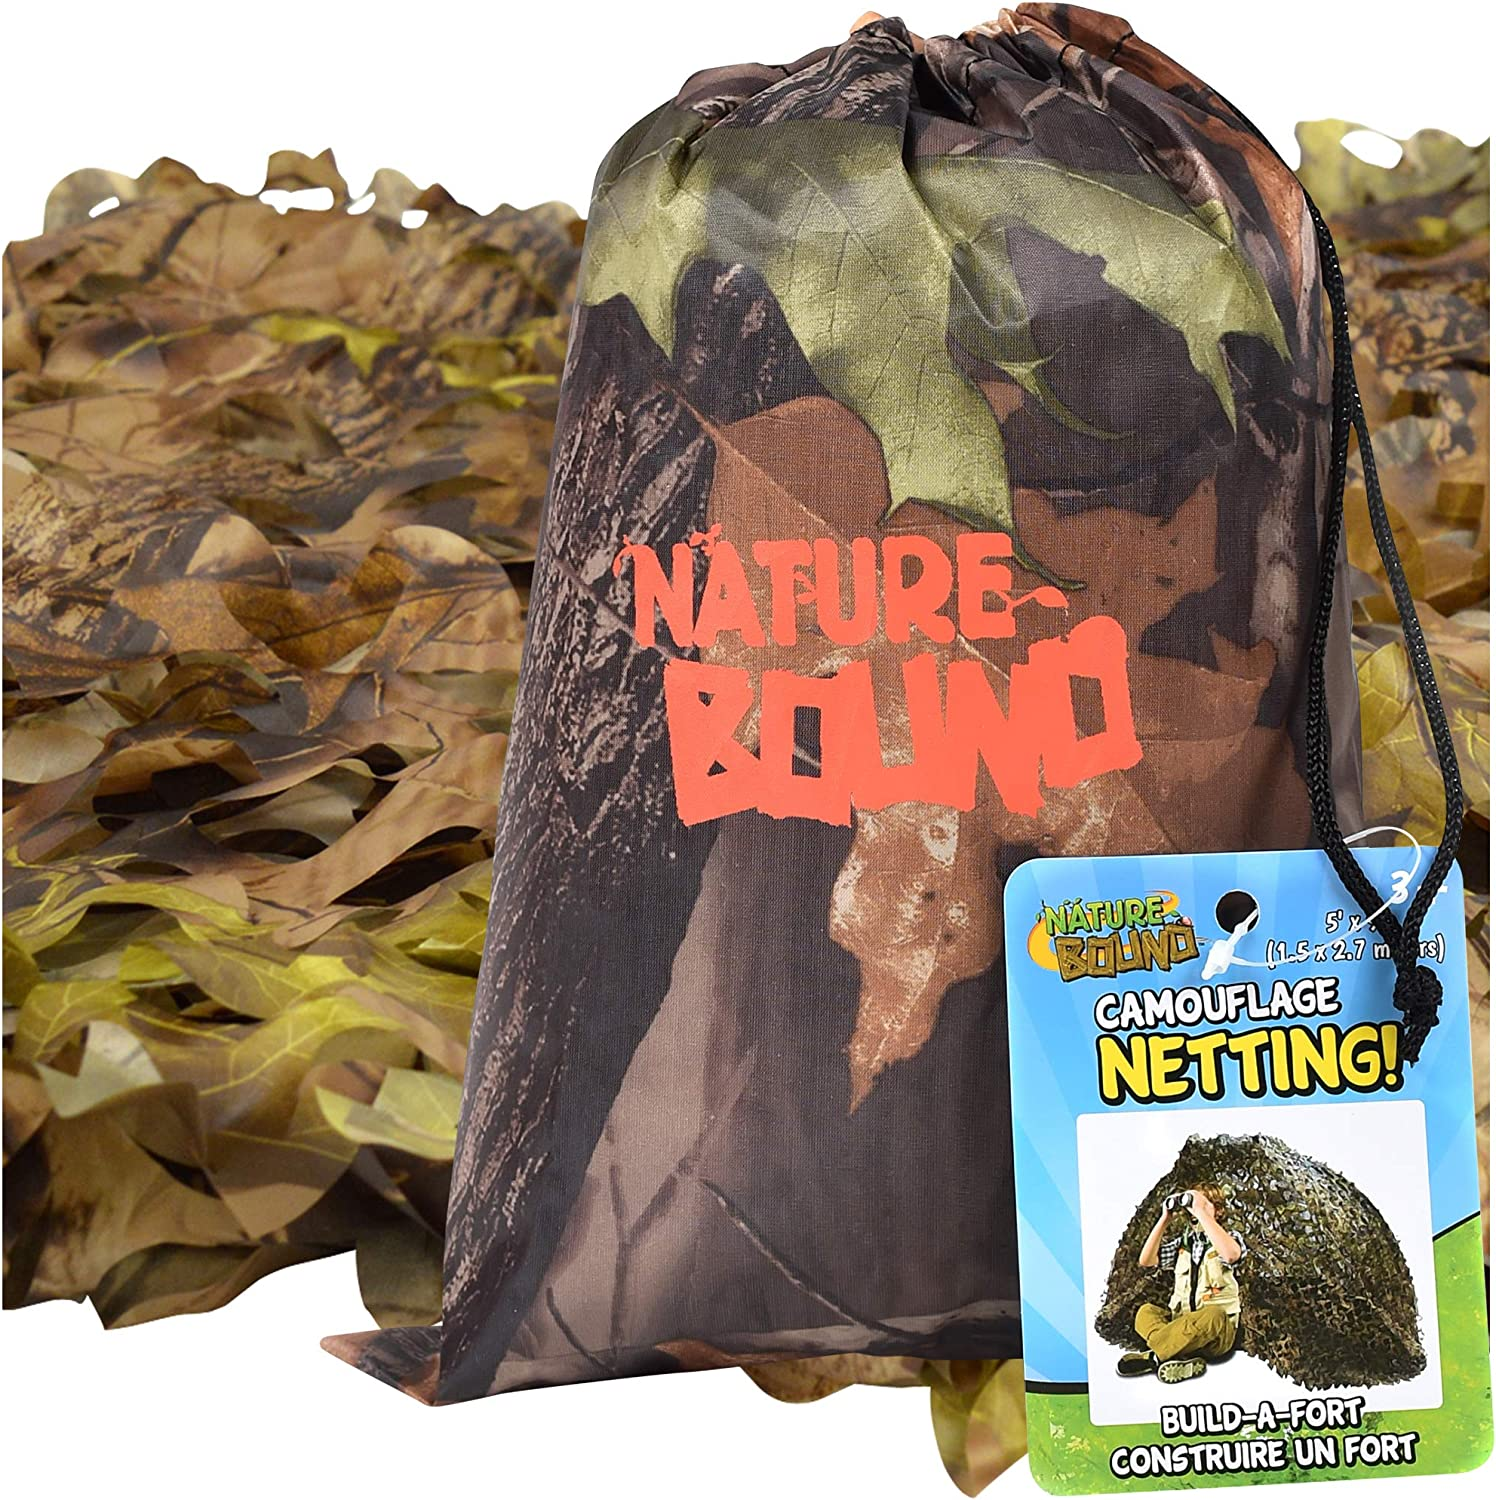 Nature Bound Camouflage Net for Kids, 9-Feet by 5-Feet, for Camping, Hiking, Indoor and Outdoor Play, Boys and Girls Ages 3+